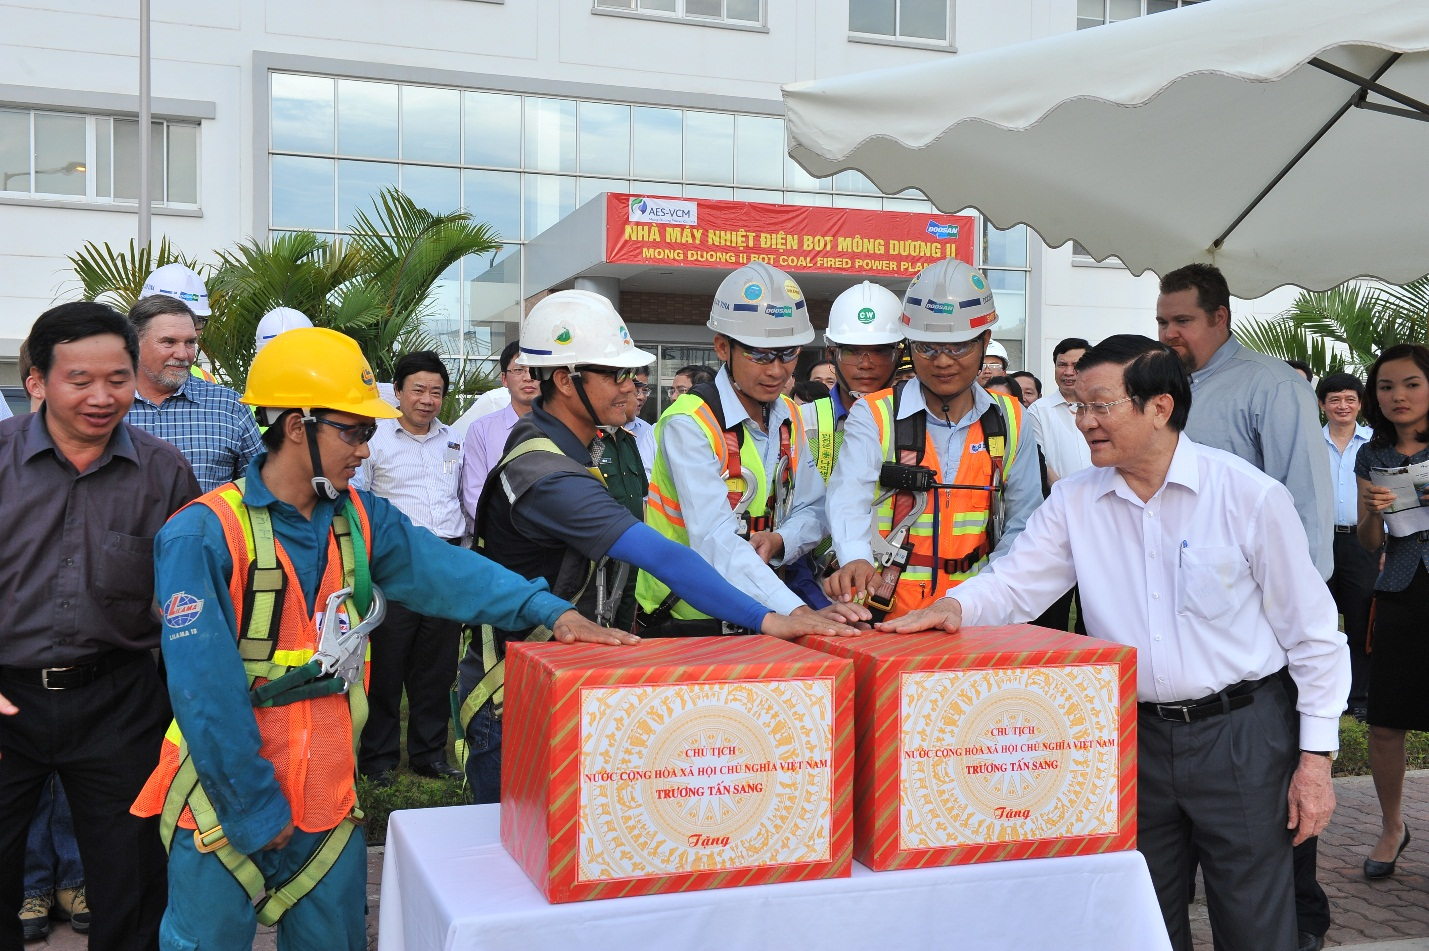 President Truong Tan Sang gave present to the excellent workers of the MD2 Project.